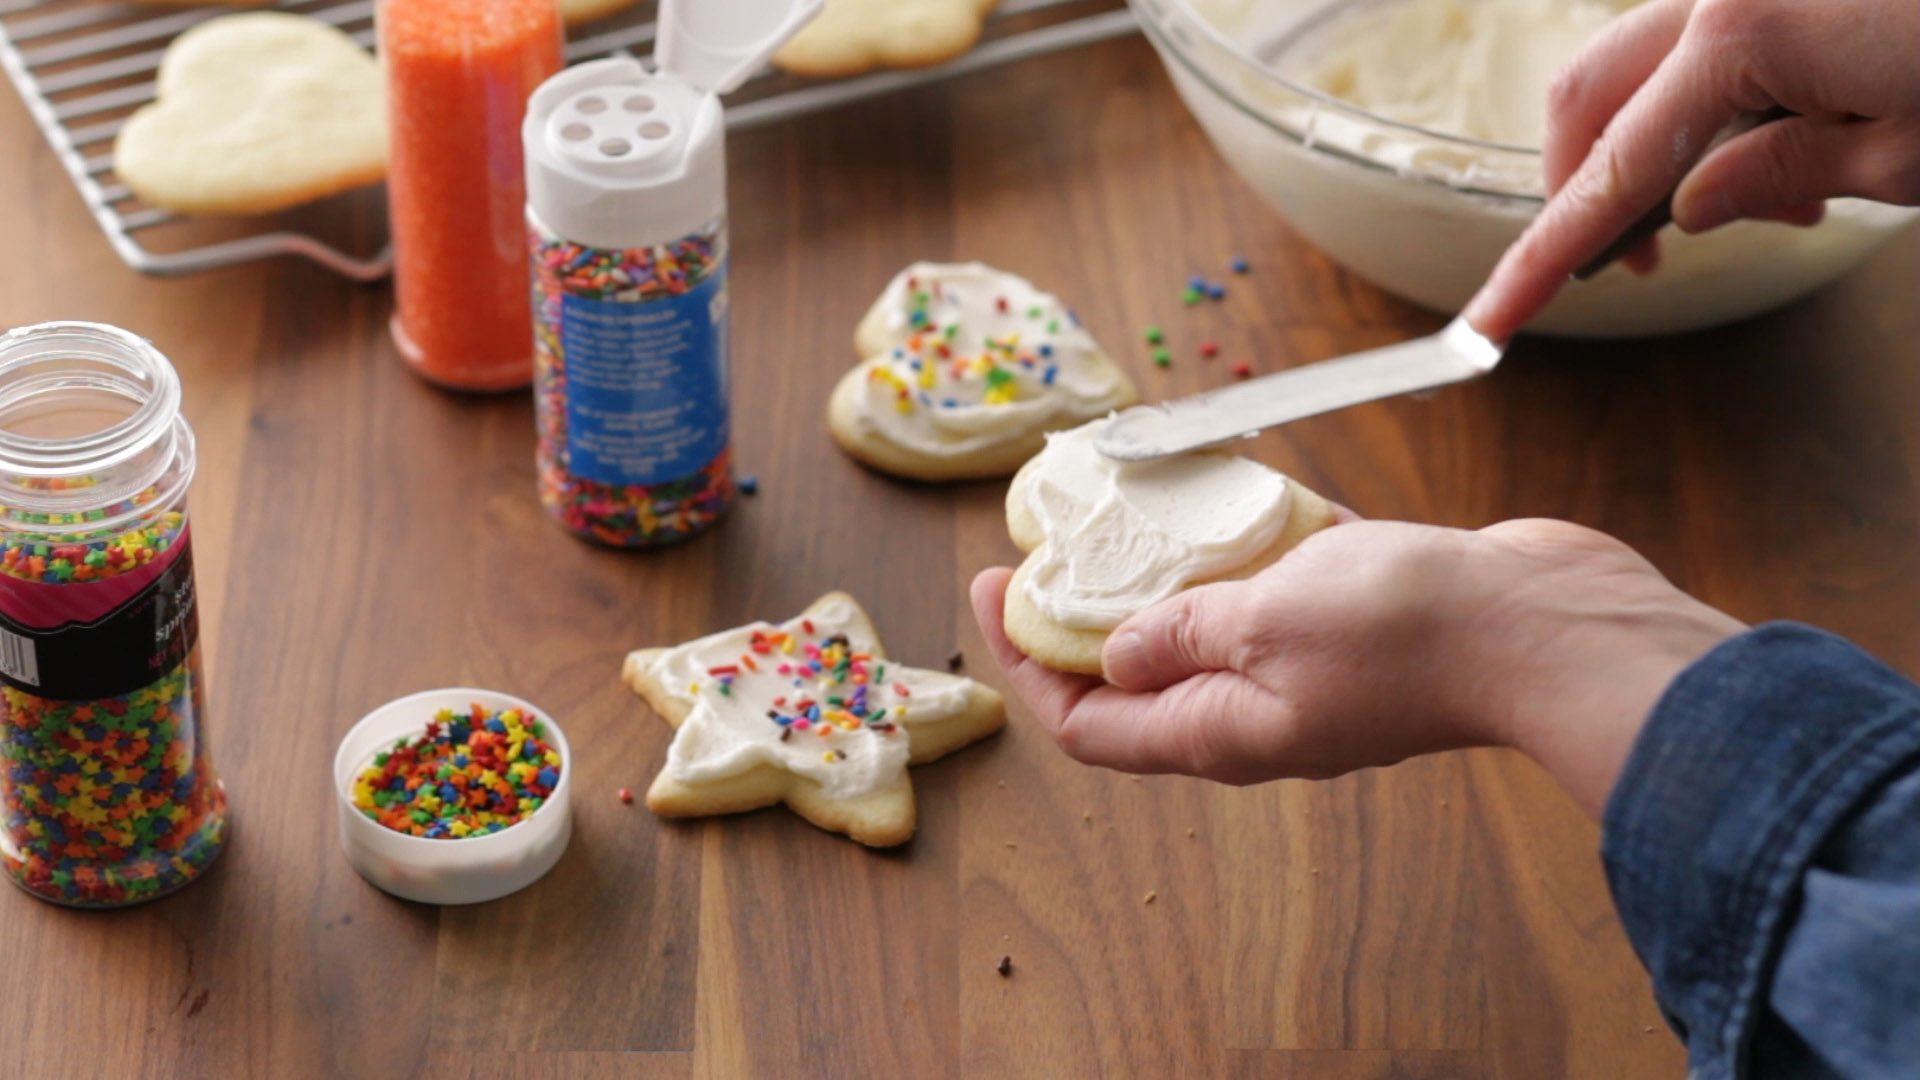 How To Make Cookies At Home Step By Step